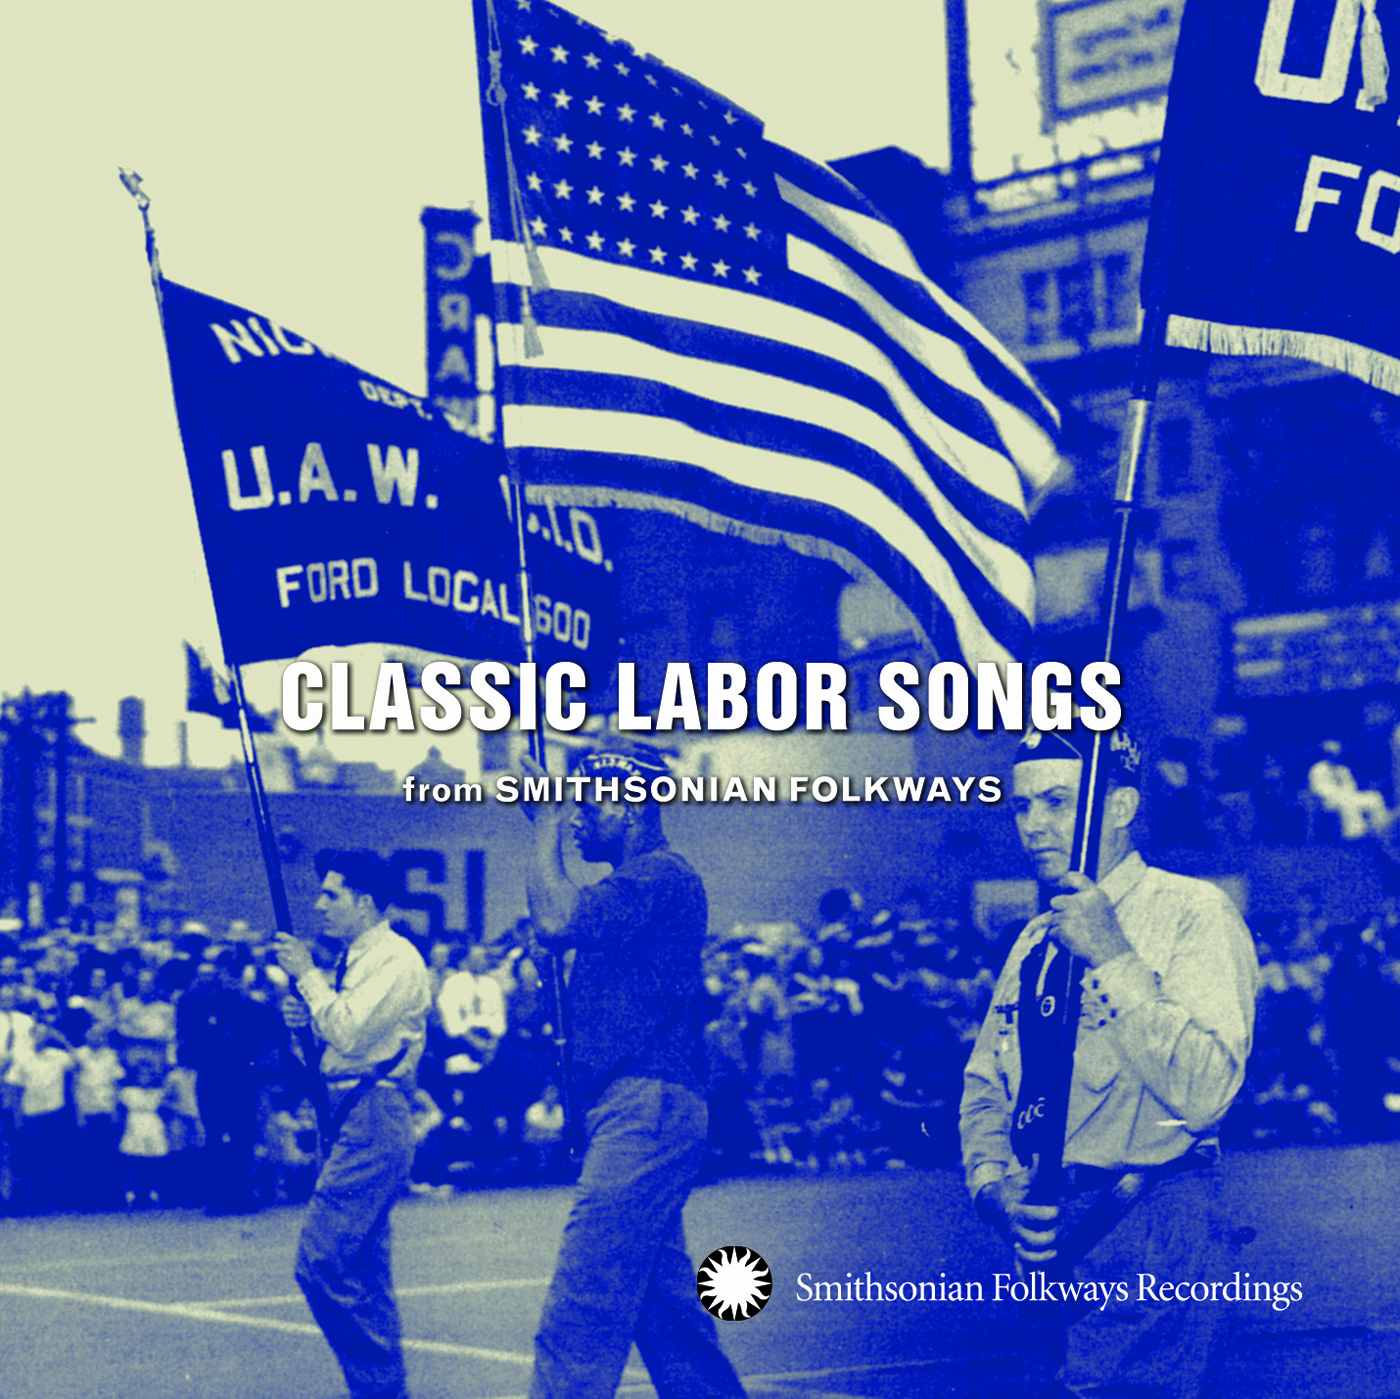 Classic Labor Songs from Smithsonian Folkways | Smithsonian